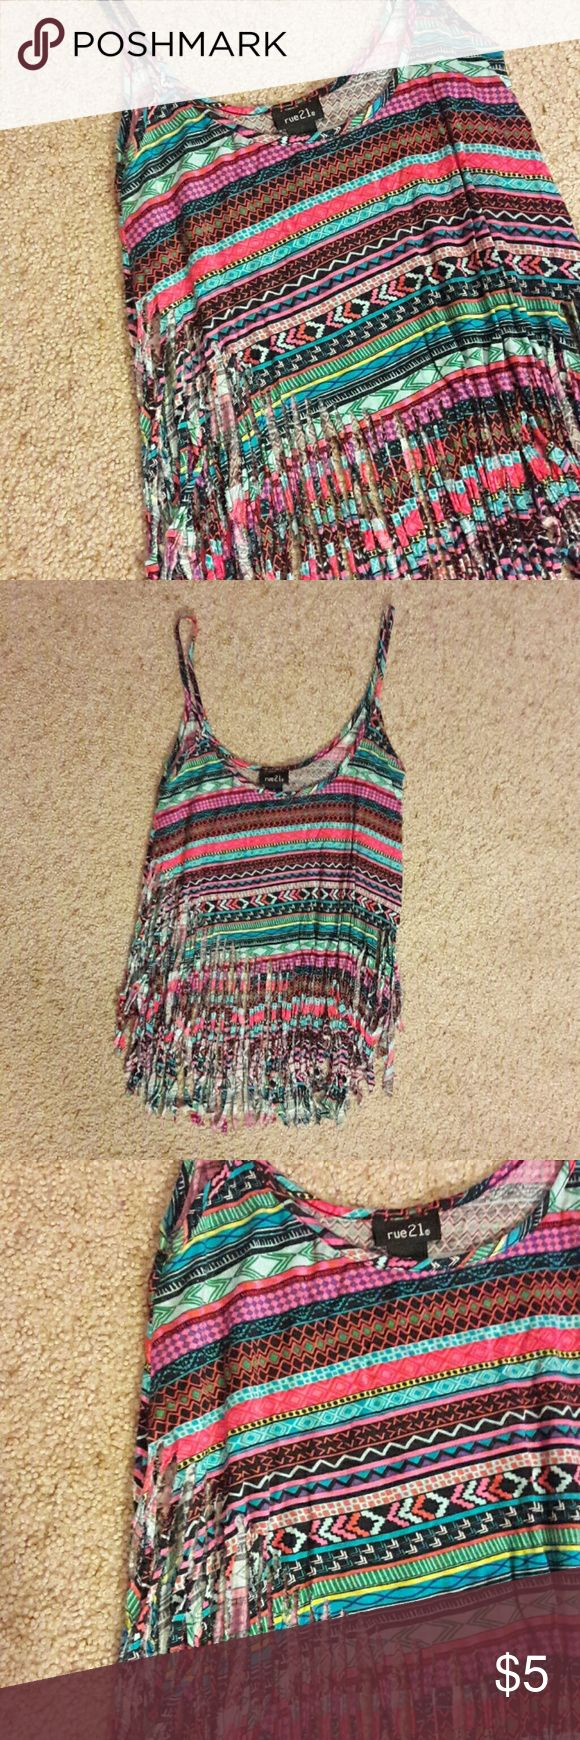 Fringed Crop Top TangTop Great condition - no imperfects. Worn once. Vibrant colors! Multicolored with the fringe cutting up higher on the sides (pic 3). Fun summer tang top or for going out! Rue 21 Tops Crop Tops